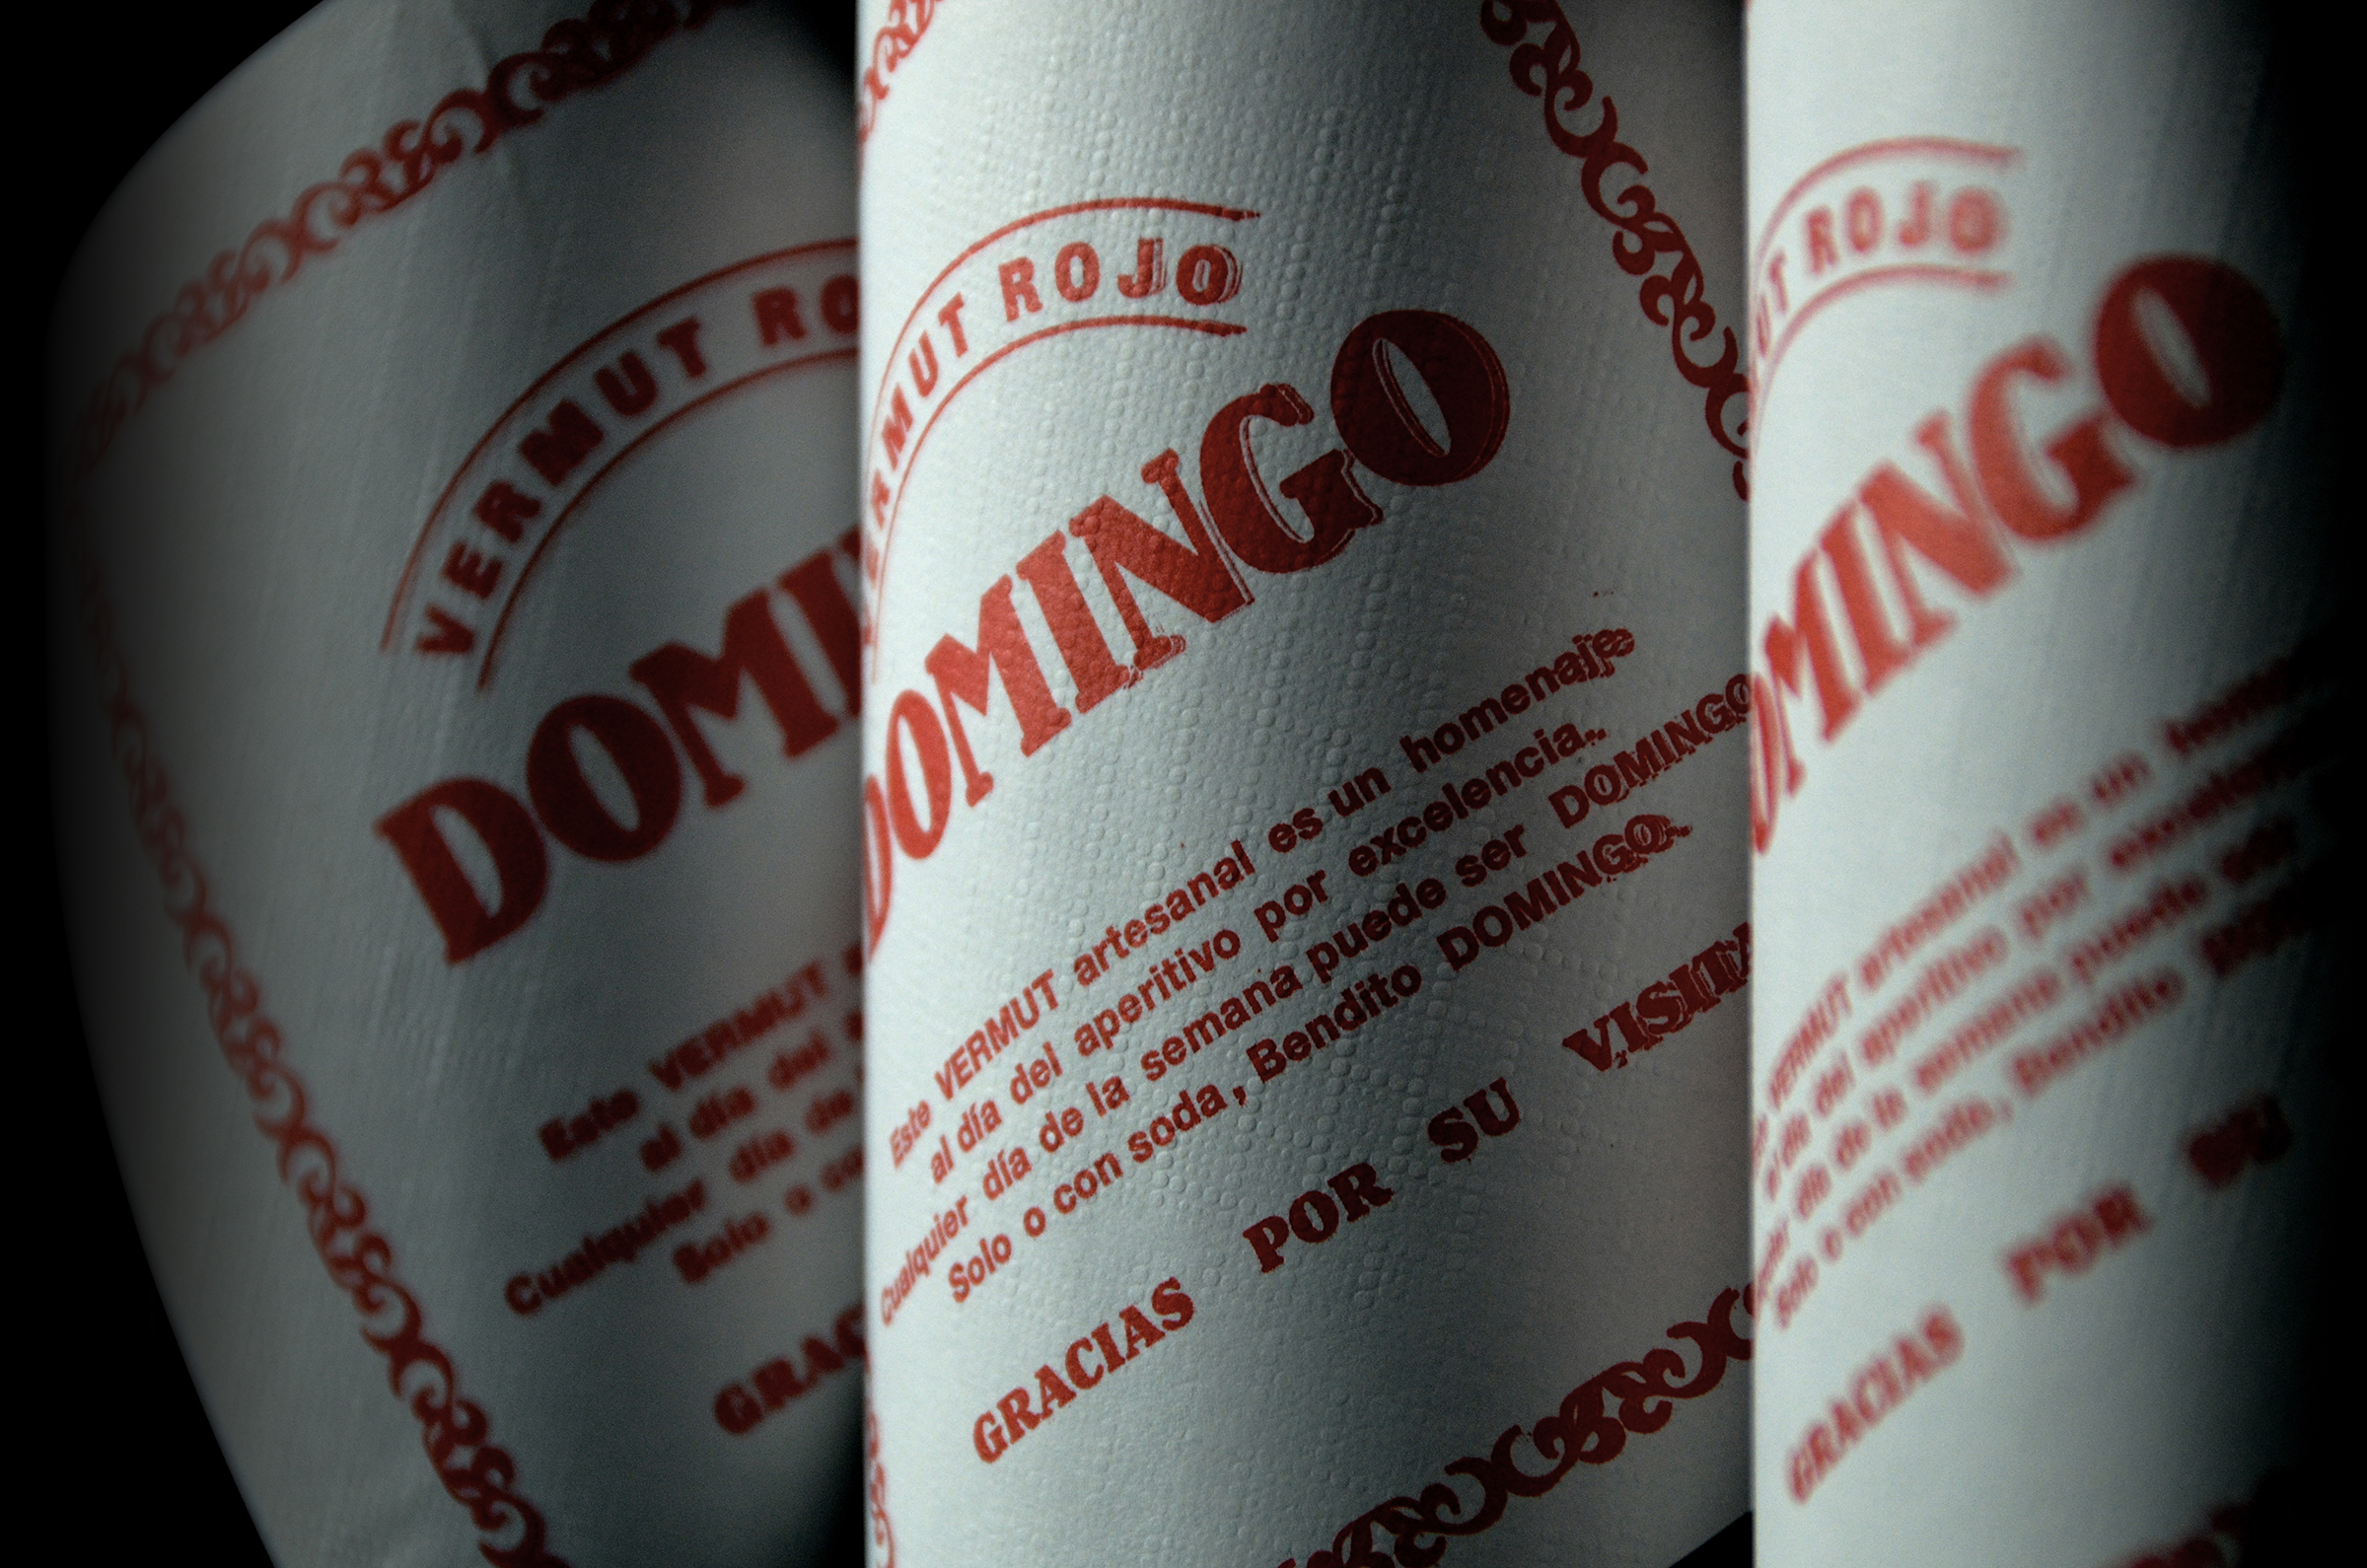 0009 DOMINGO LABEL TEXTURE DETAIL b.jpg